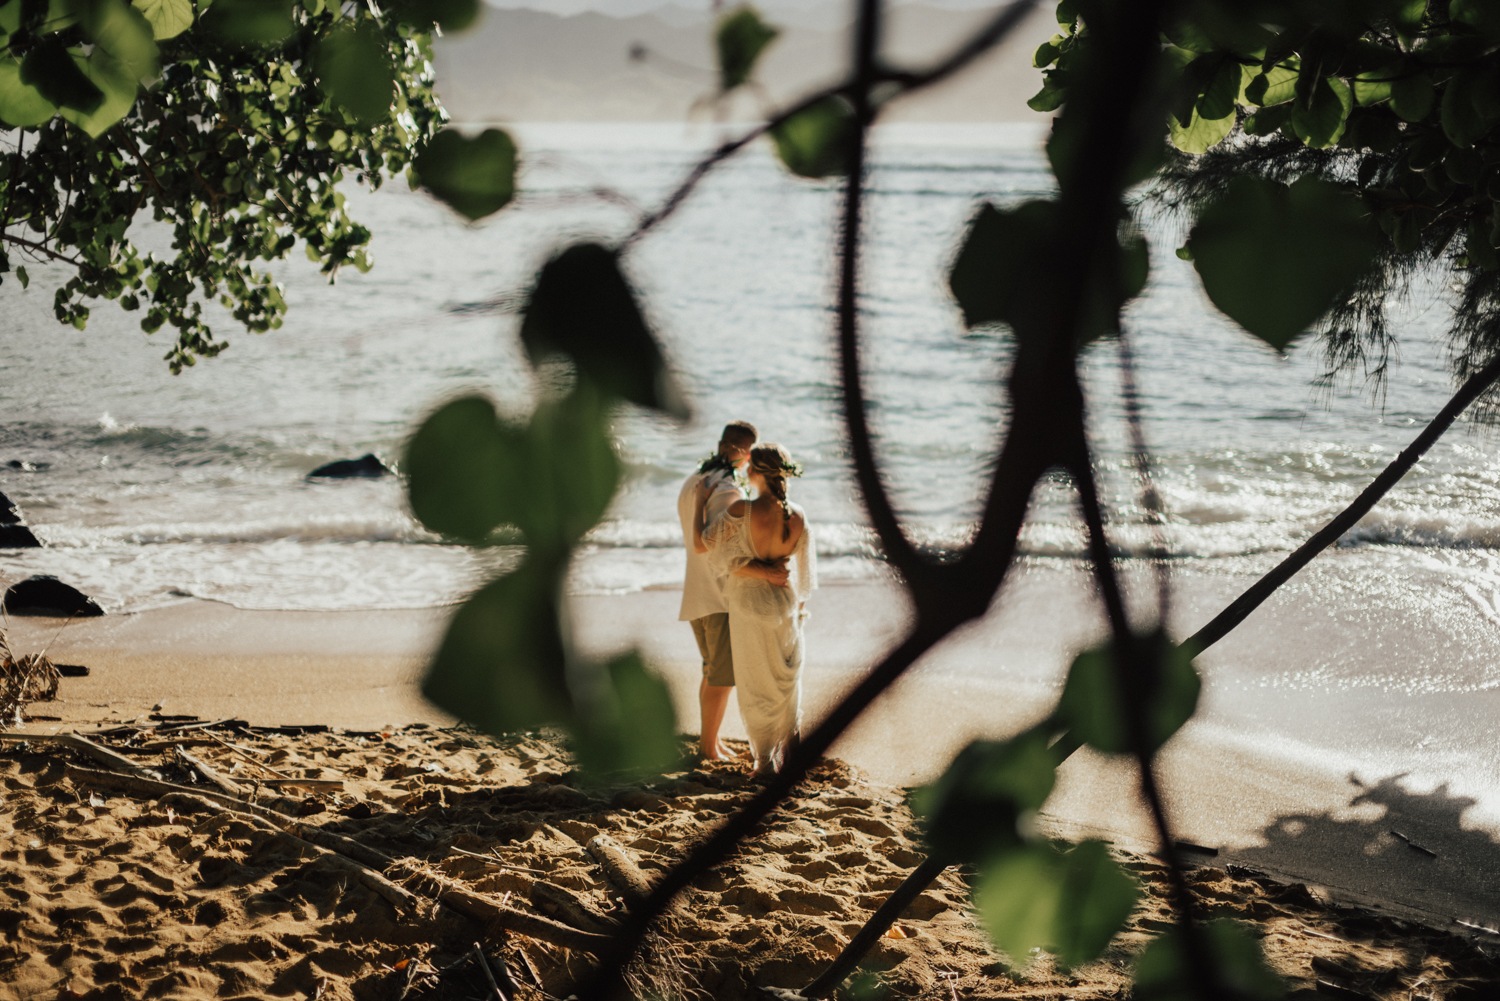 Kauai-elopement-photographer-70.jpg